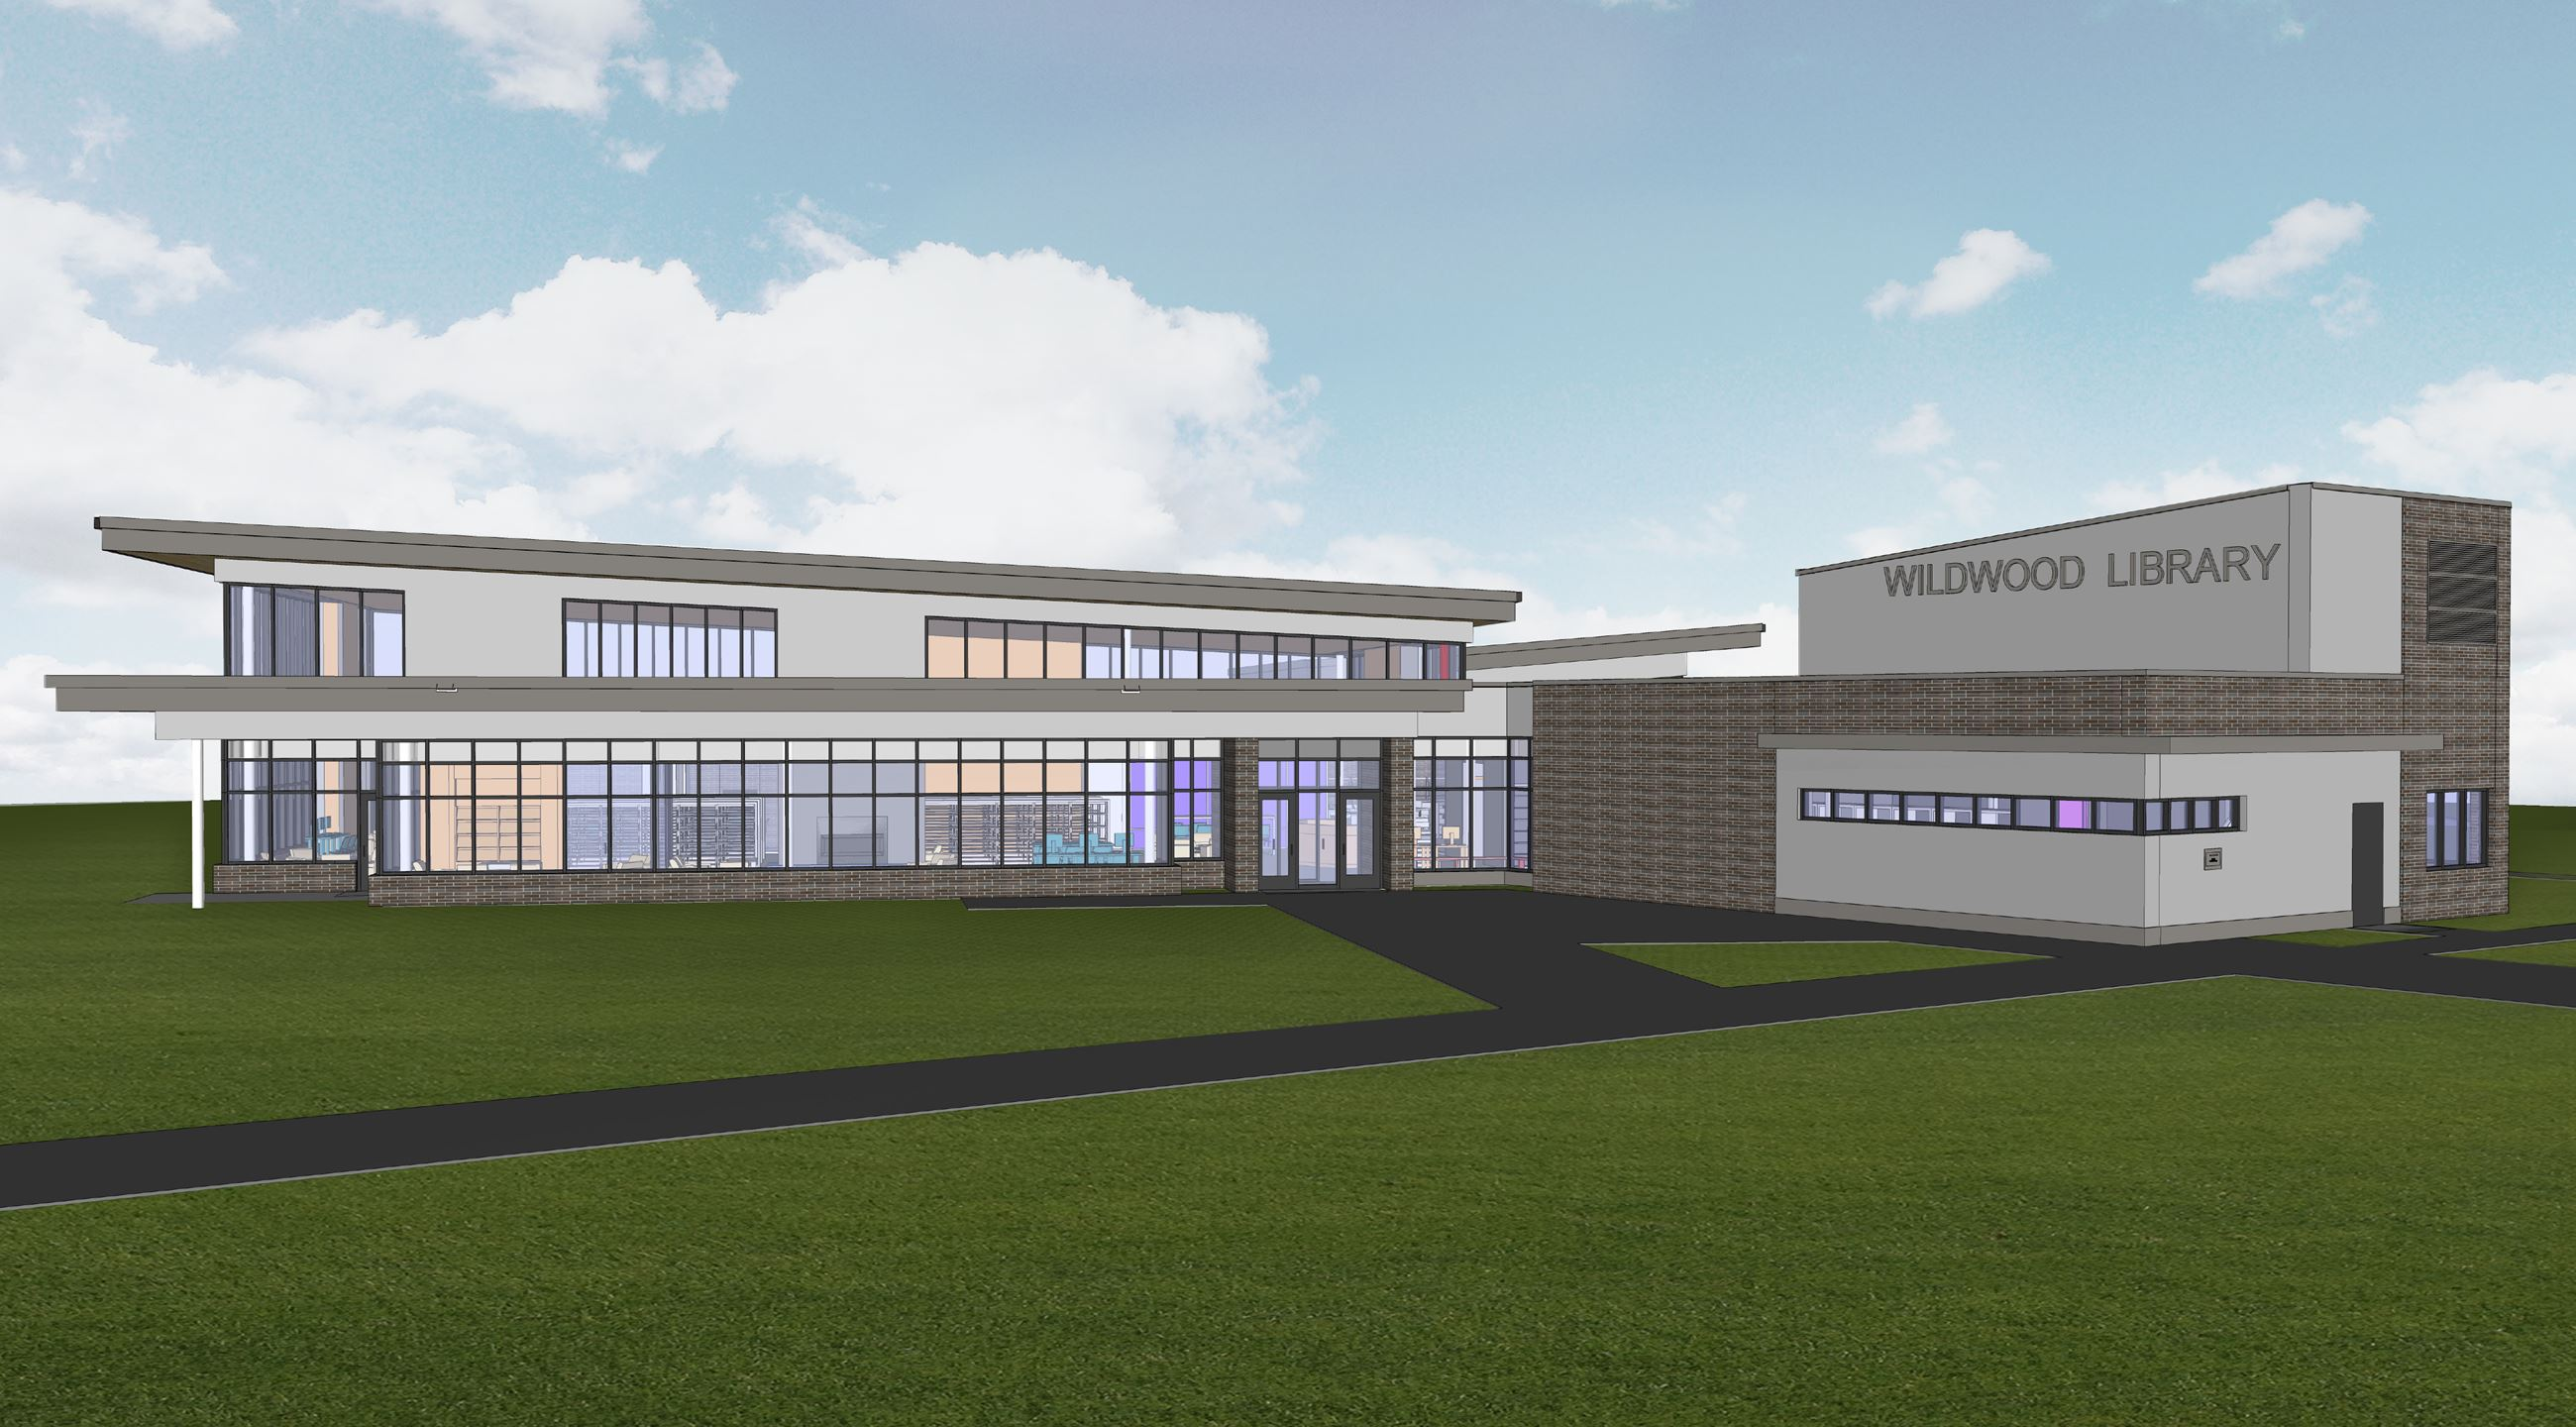 New Wildwood Library - Front Elevation (IMAGE)